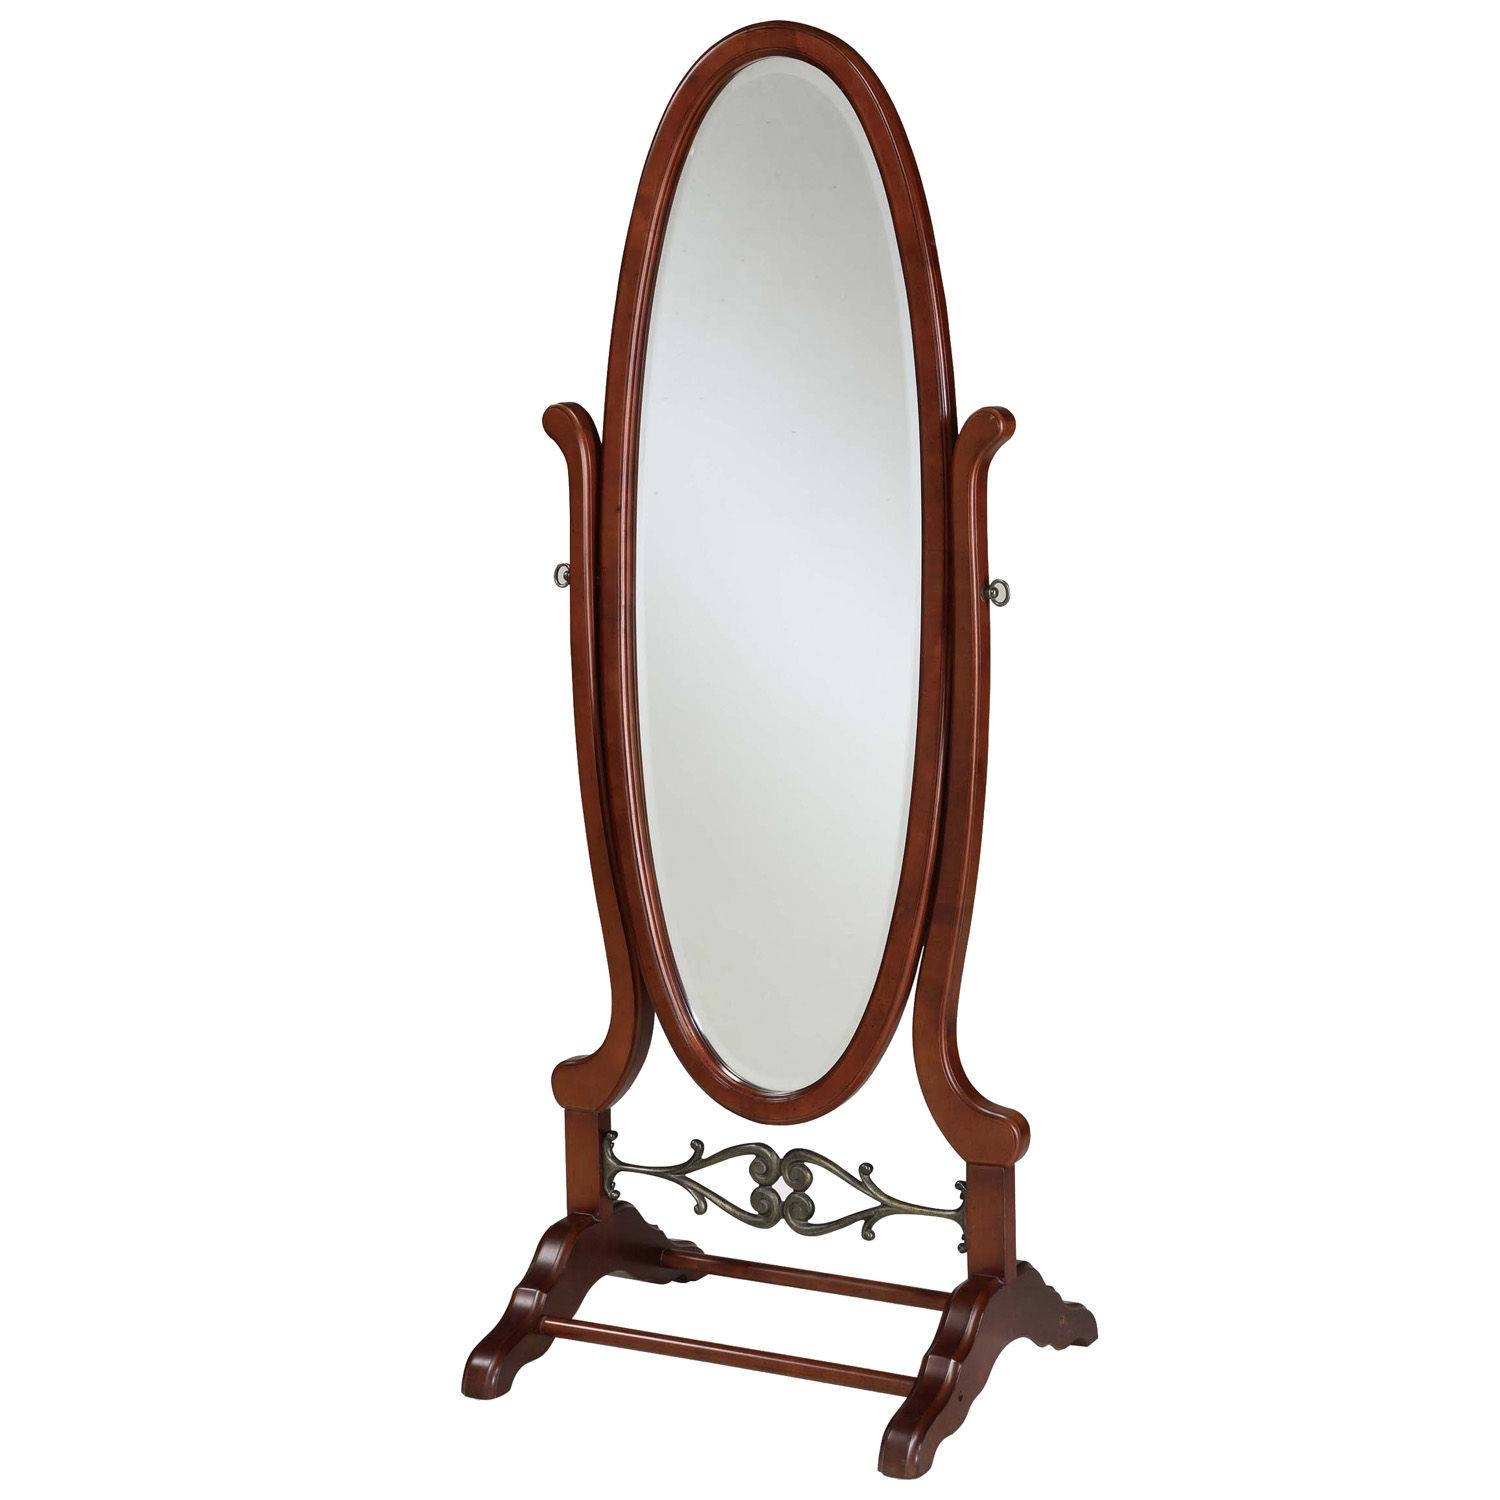 Full Length Cheval Mirror | Inovodecor inside Full Length Cheval Mirrors (Image 18 of 25)